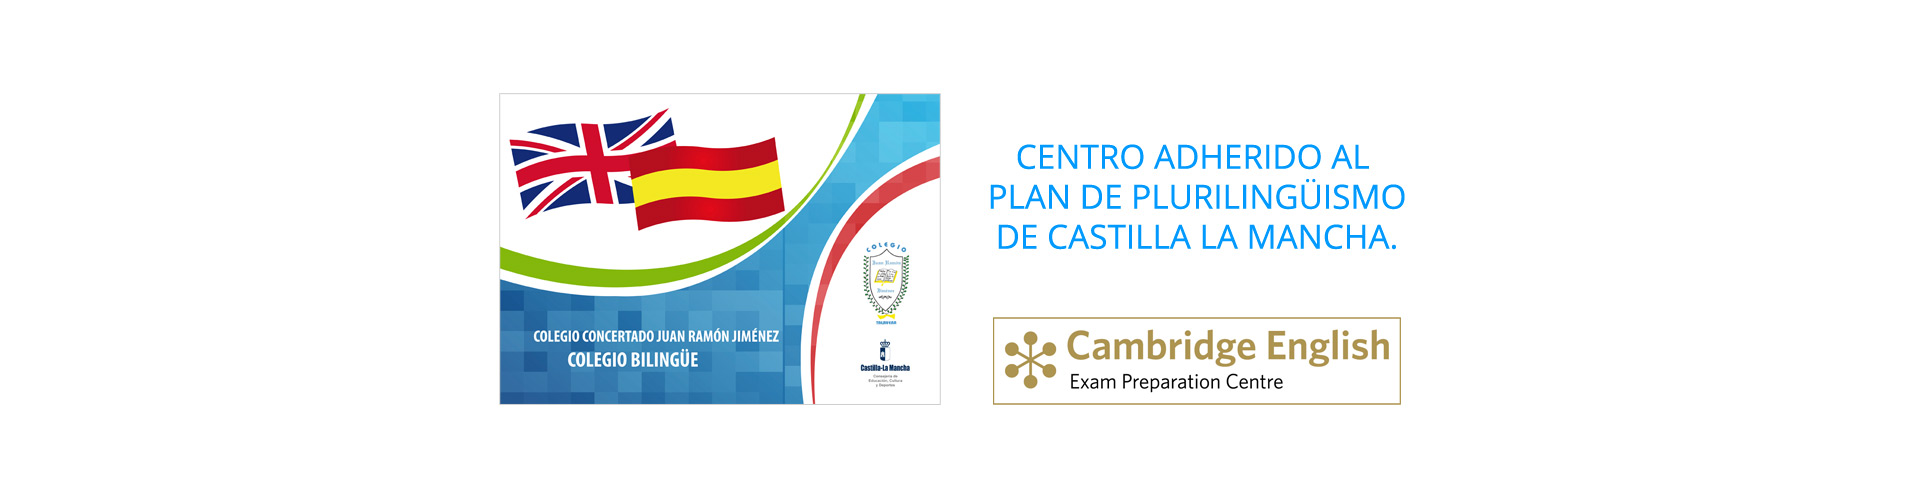 Cambridge English - Colegio JRJ